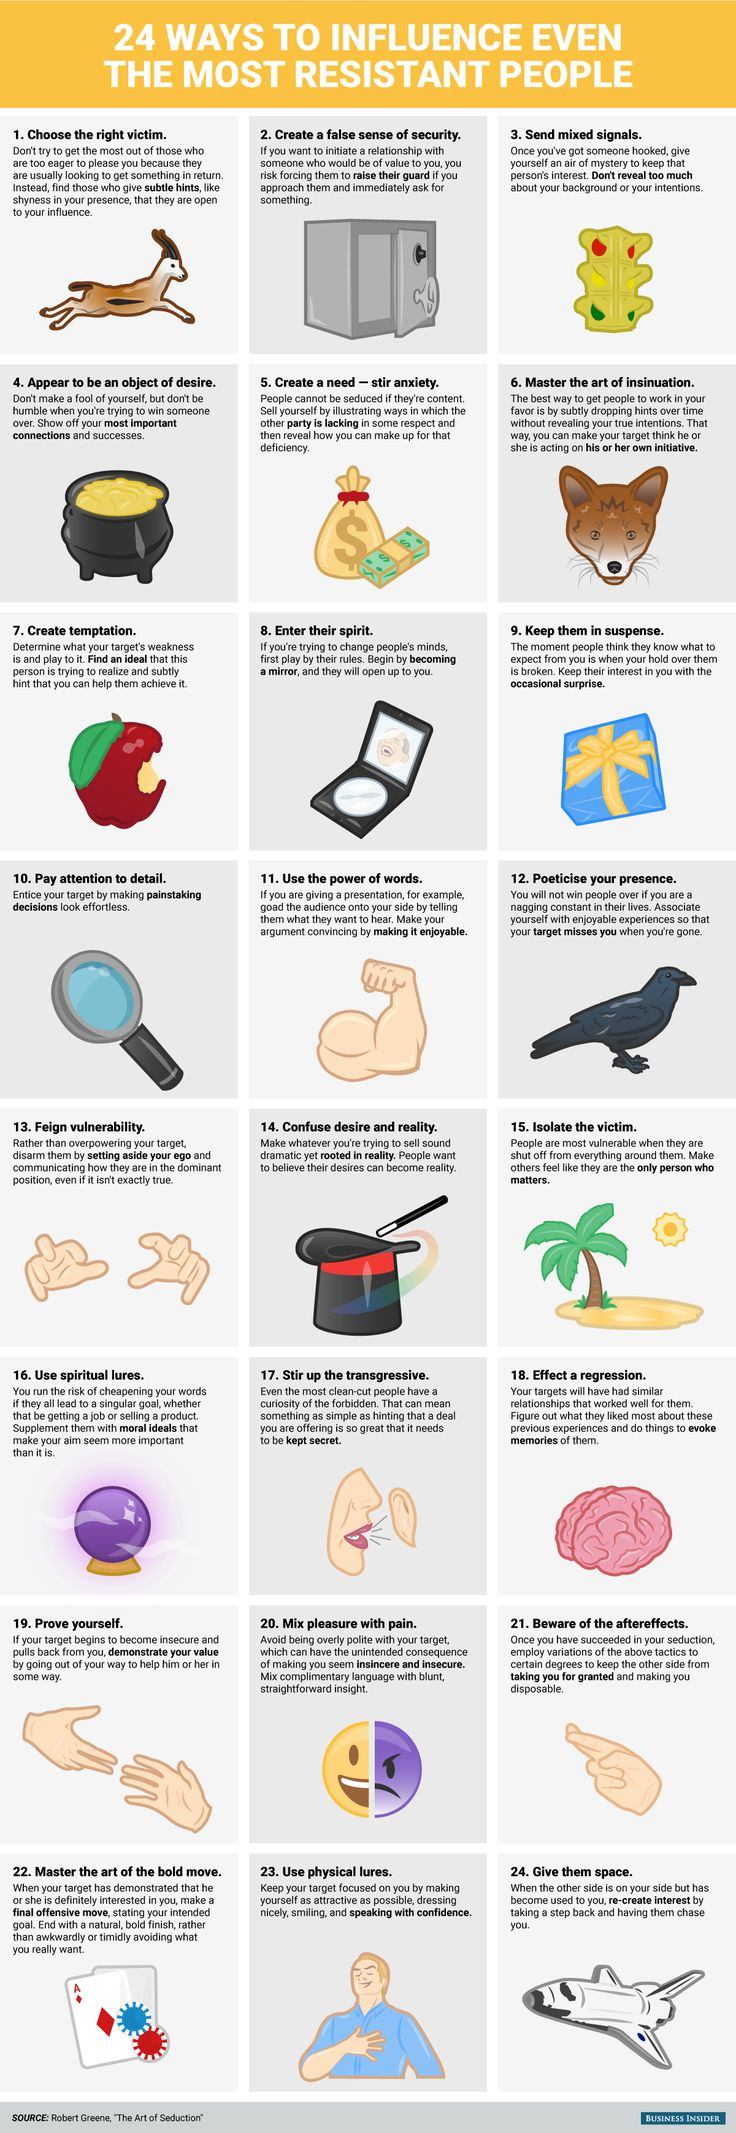 BI_Graphic_24 Ways to Influence Even the Most Resistant People. ~ WOW! So many possibilities :)